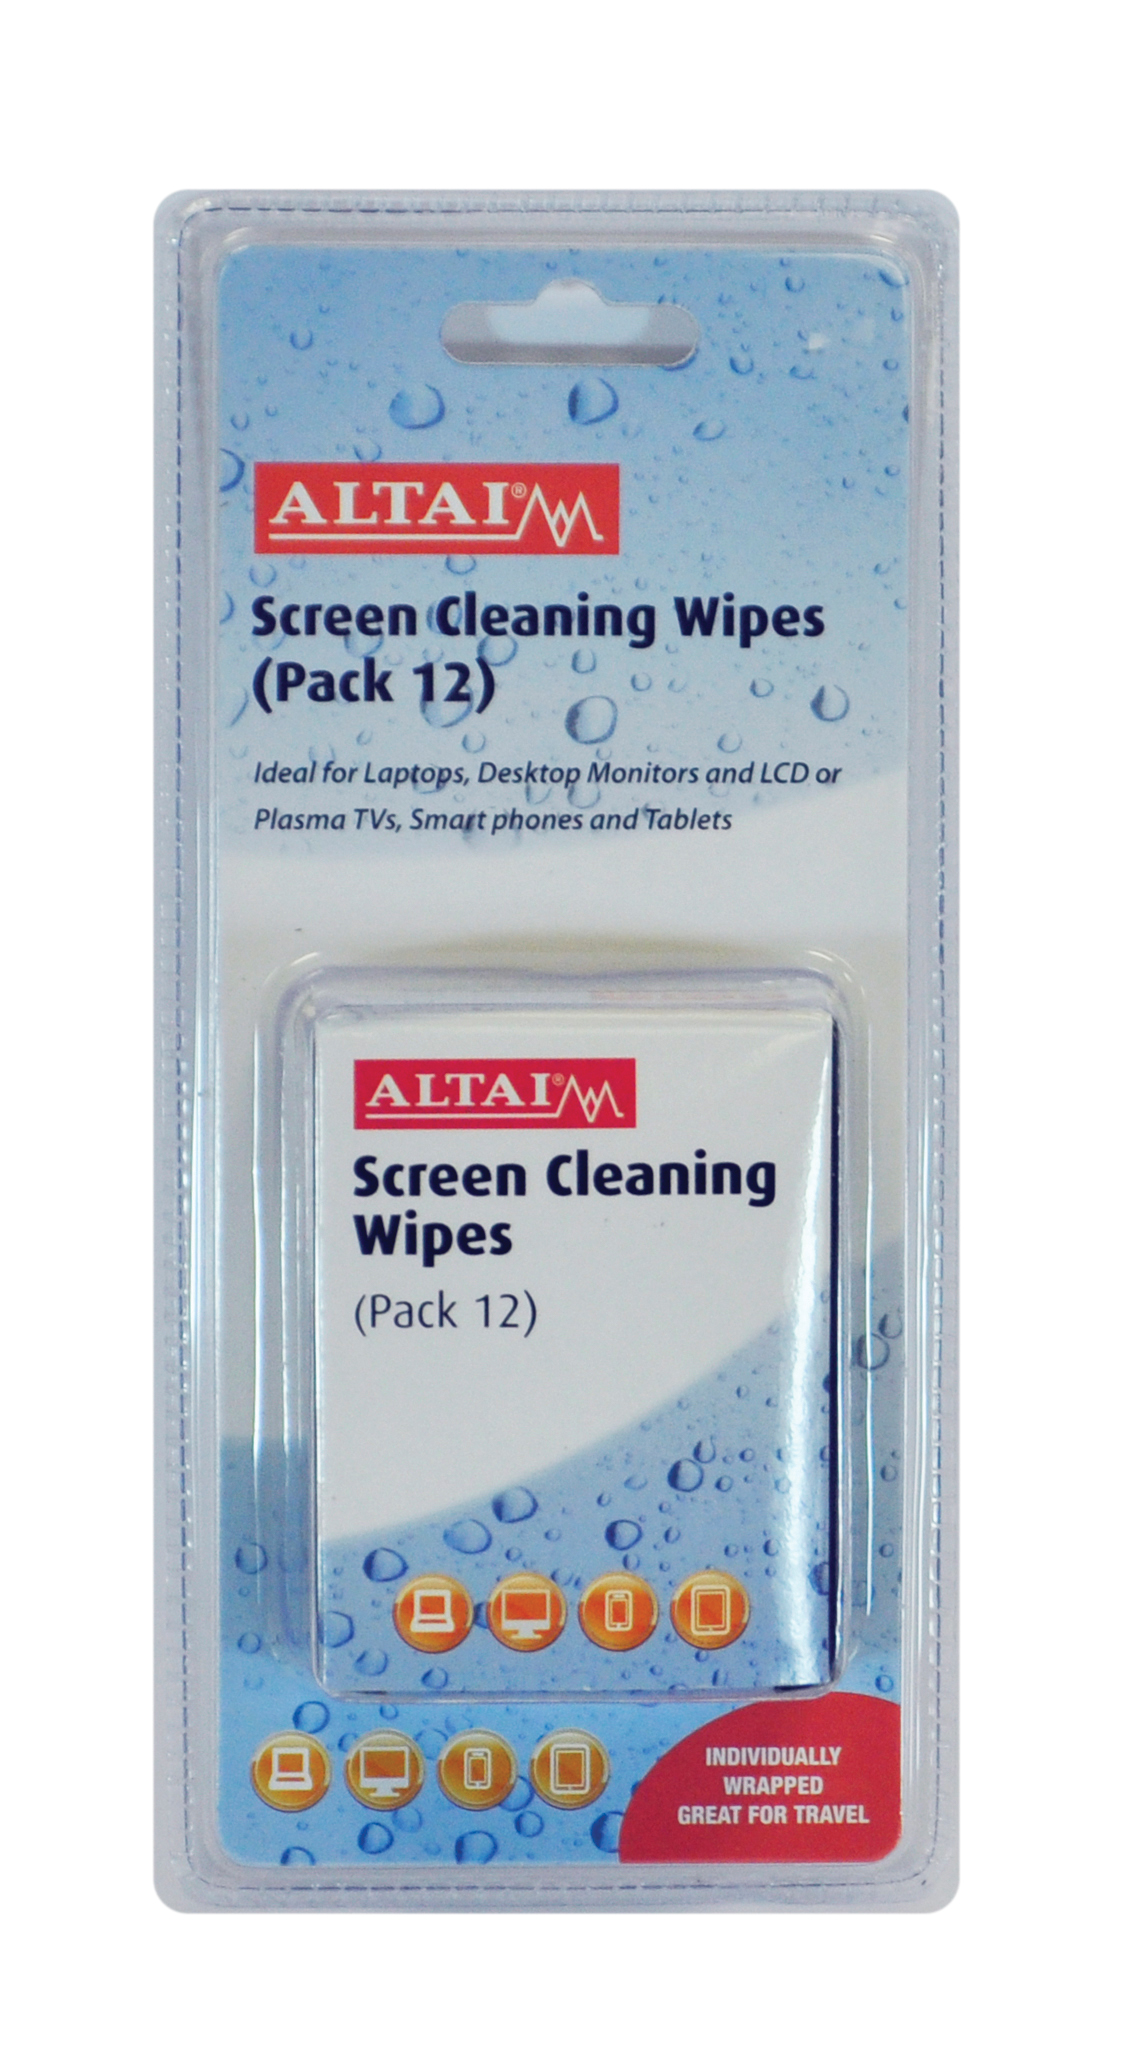 screen cleaning wipes pack 12 foiled for tv lcd plasma. Black Bedroom Furniture Sets. Home Design Ideas